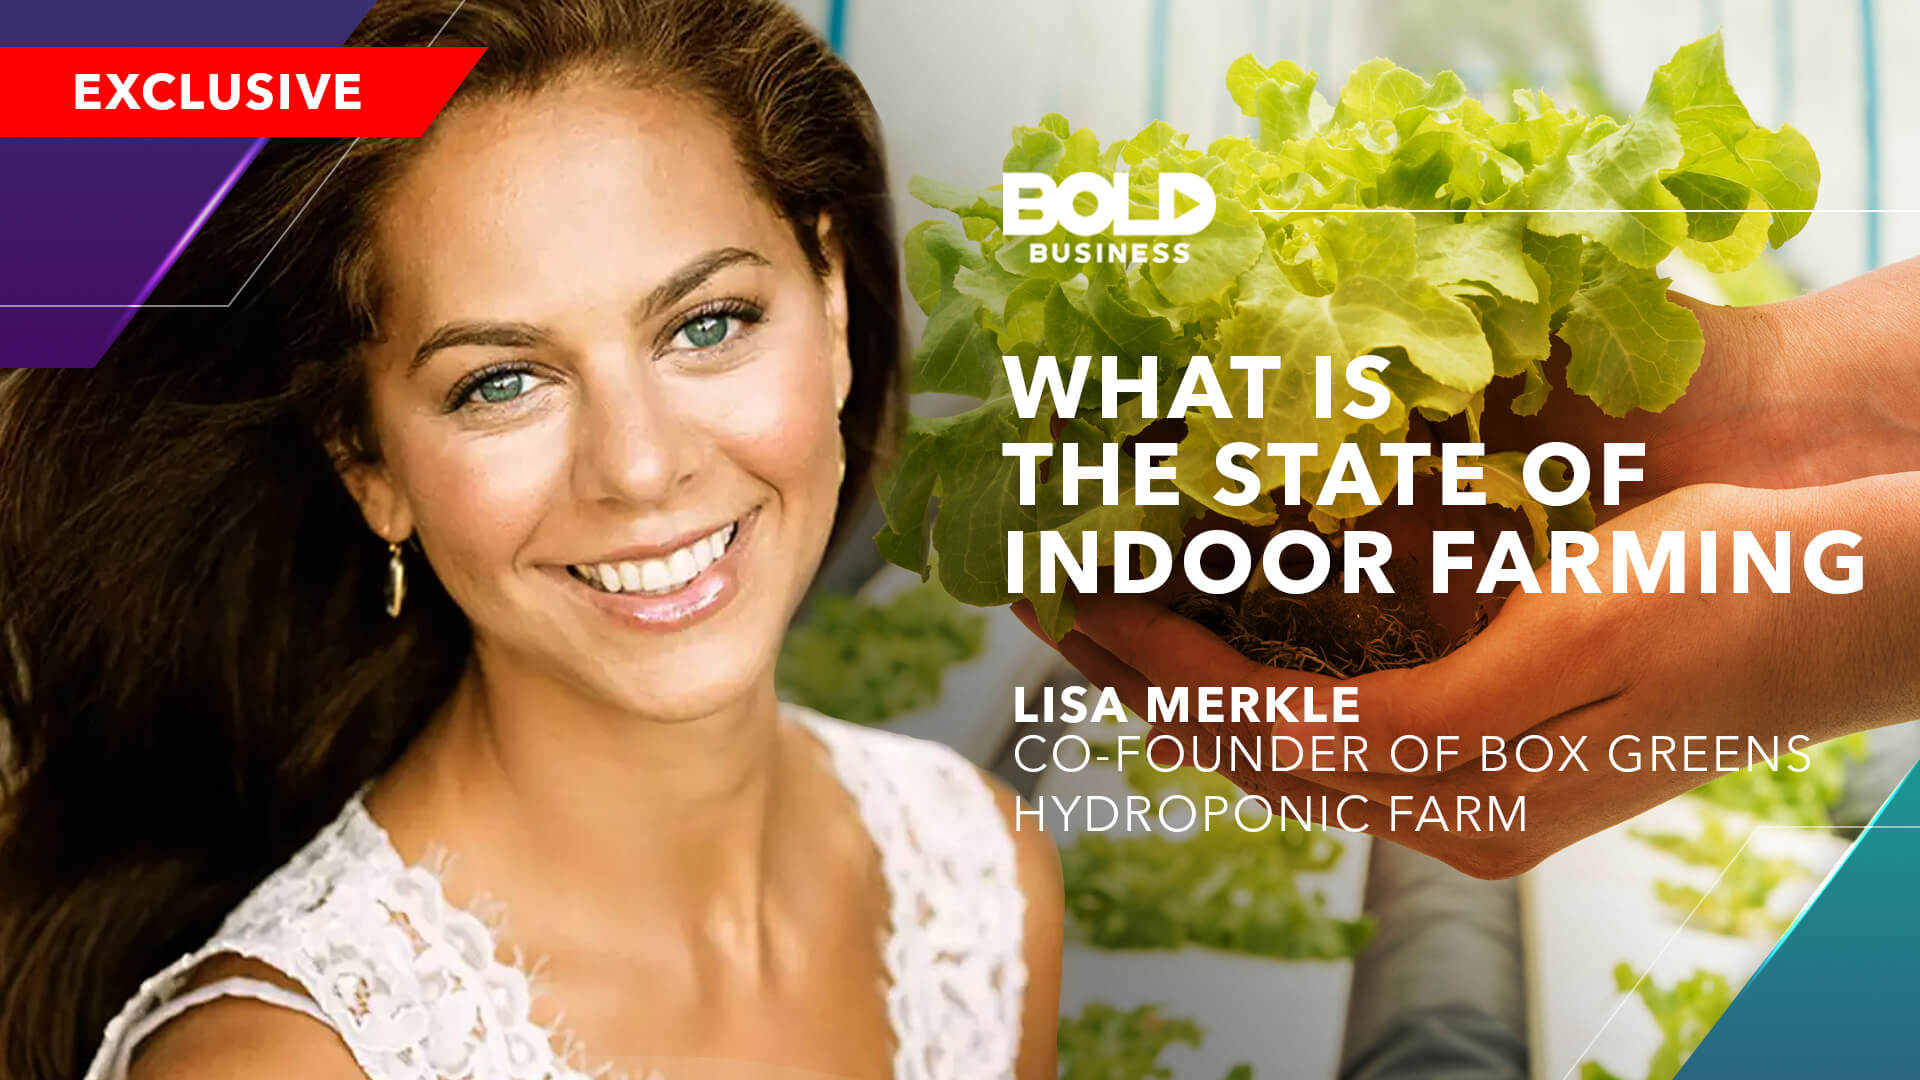 Box Greens: Creating the Future State of Hydroponic Indoor Farming